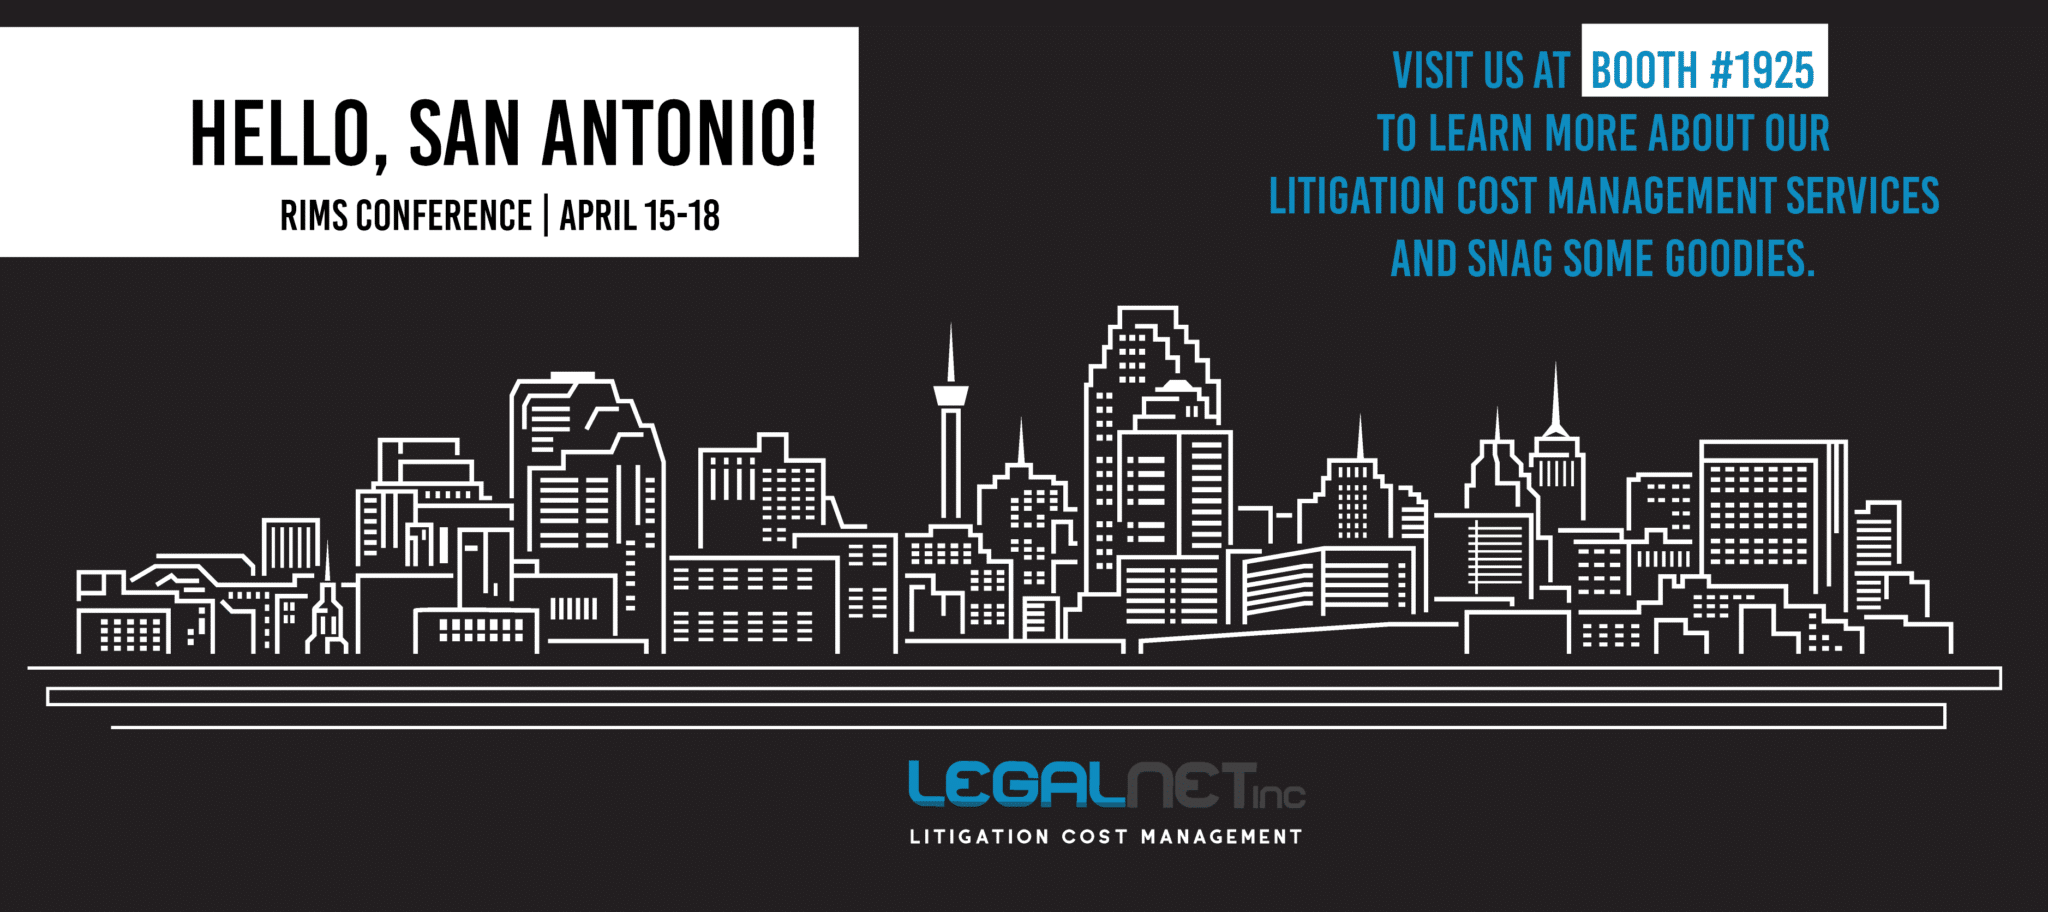 Visit LegalNet Litigation Cost Management at RIMS 2018 Risk Management Conference in San Antonio, TX